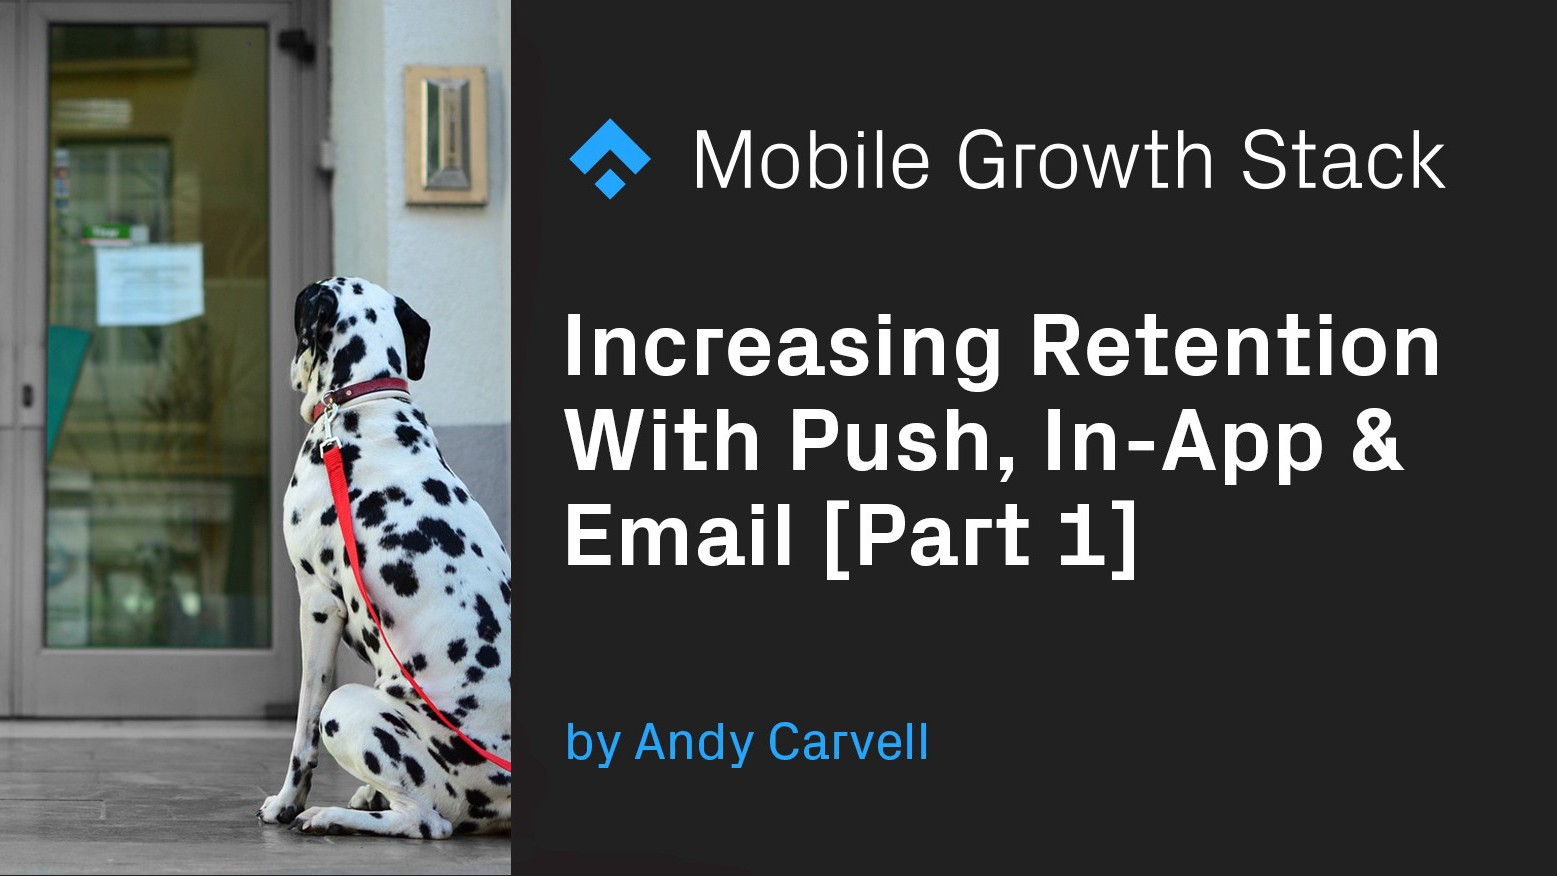 Increasing Retention With Push, In-App & Email [Part 1]